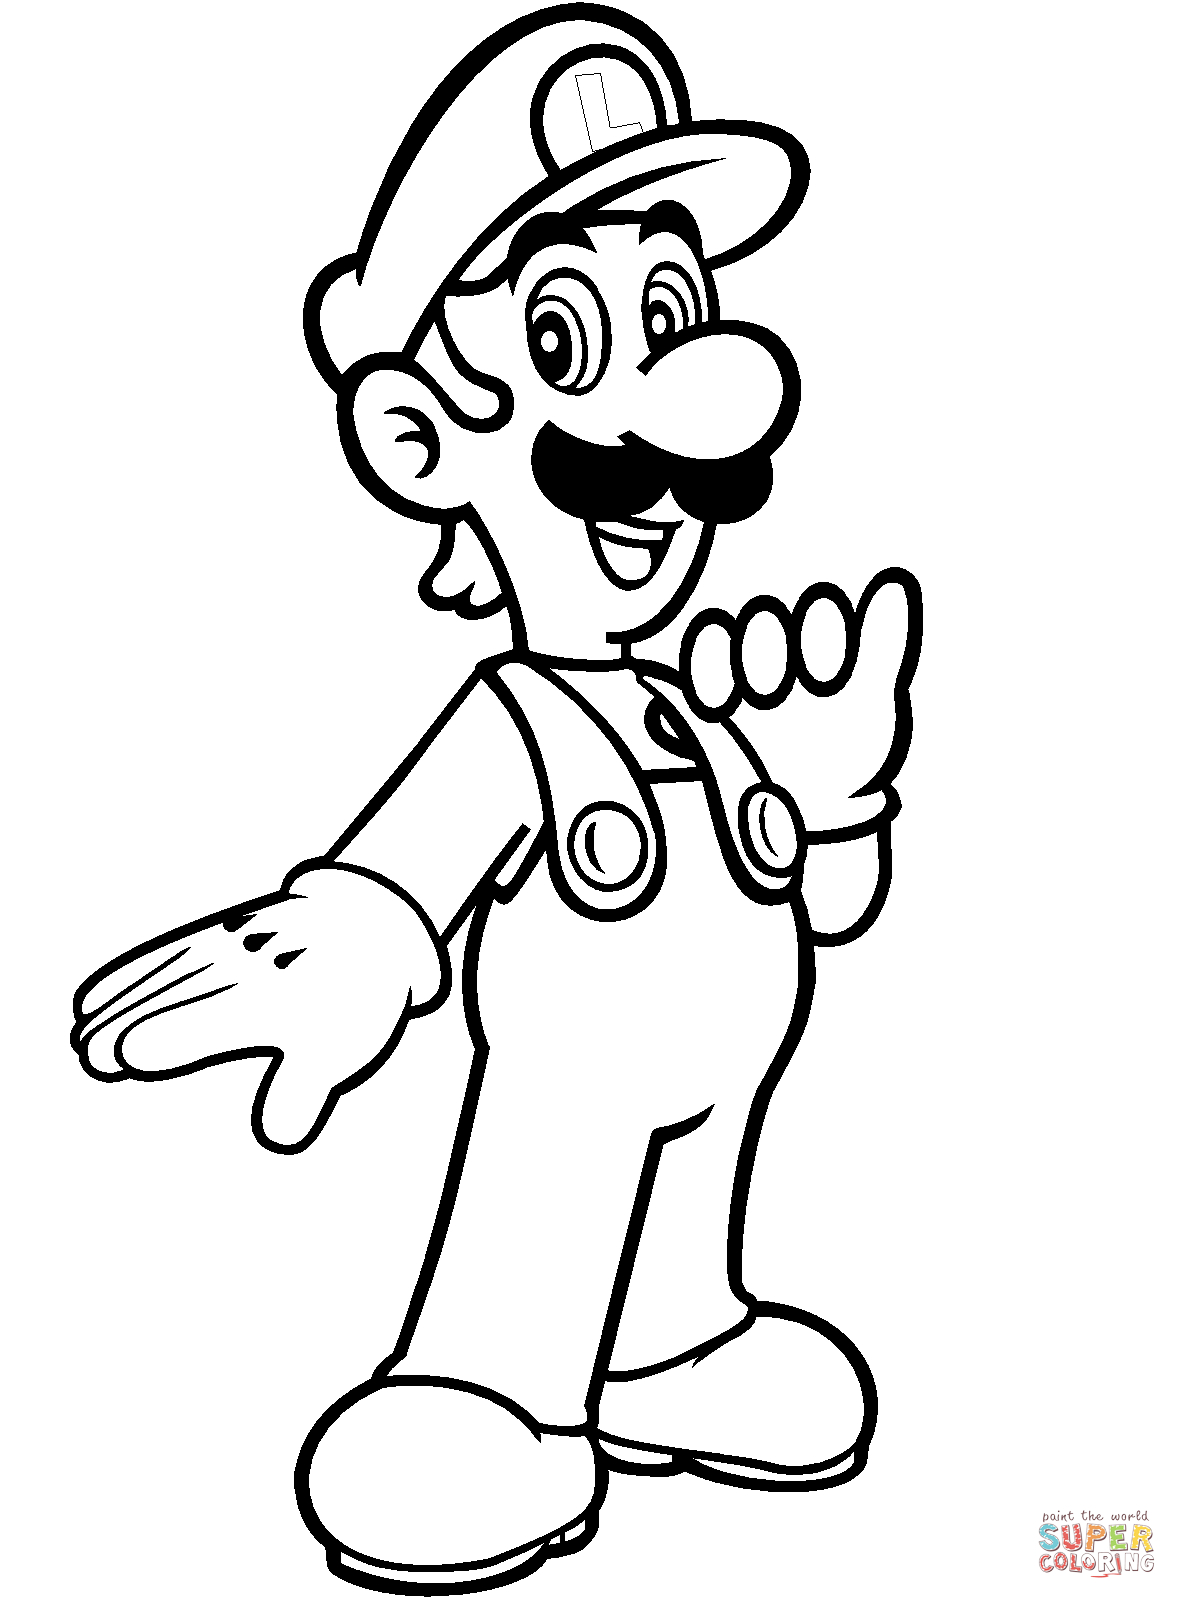 Super Mario Bros. Coloring Pages | Free Coloring Pages - Mario Coloring Pages Free Printable